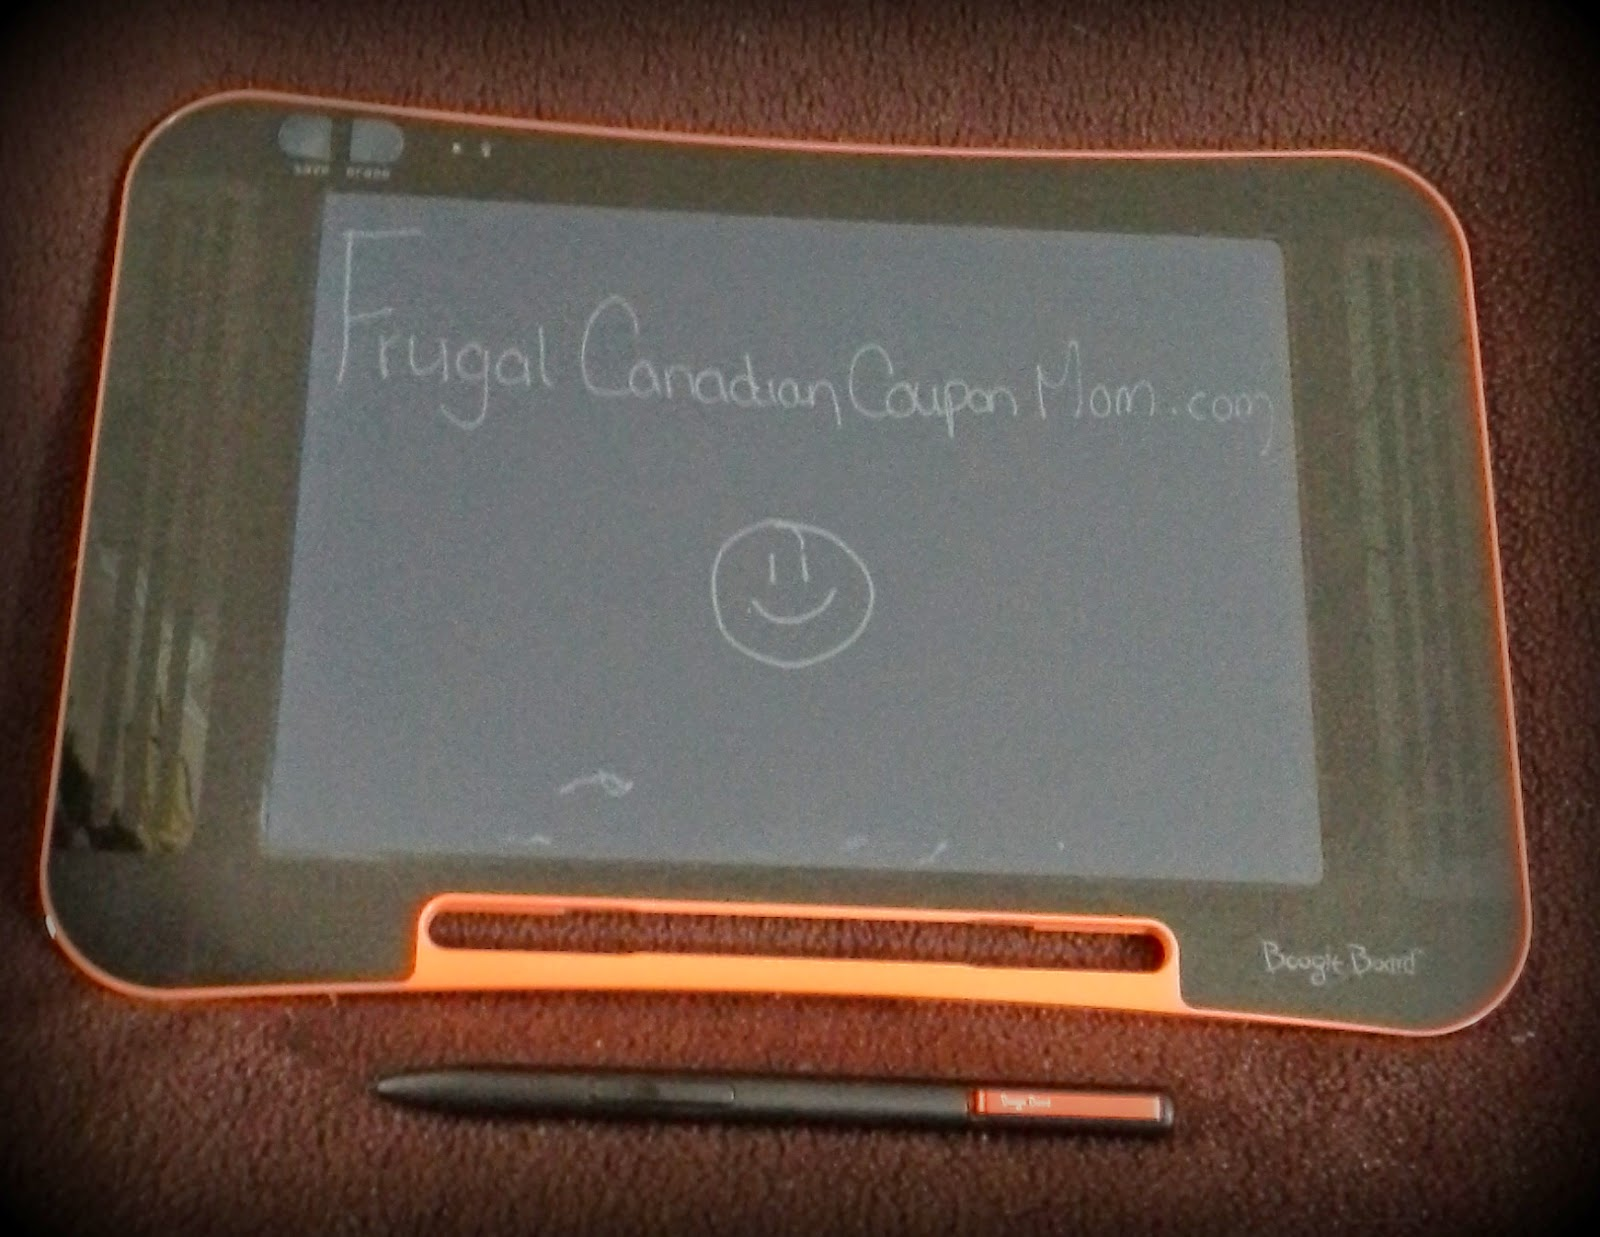 Boogie Board Memo Boogie Board Sync 4141 eWriter review Frugal Canadian Coupon Mom 18